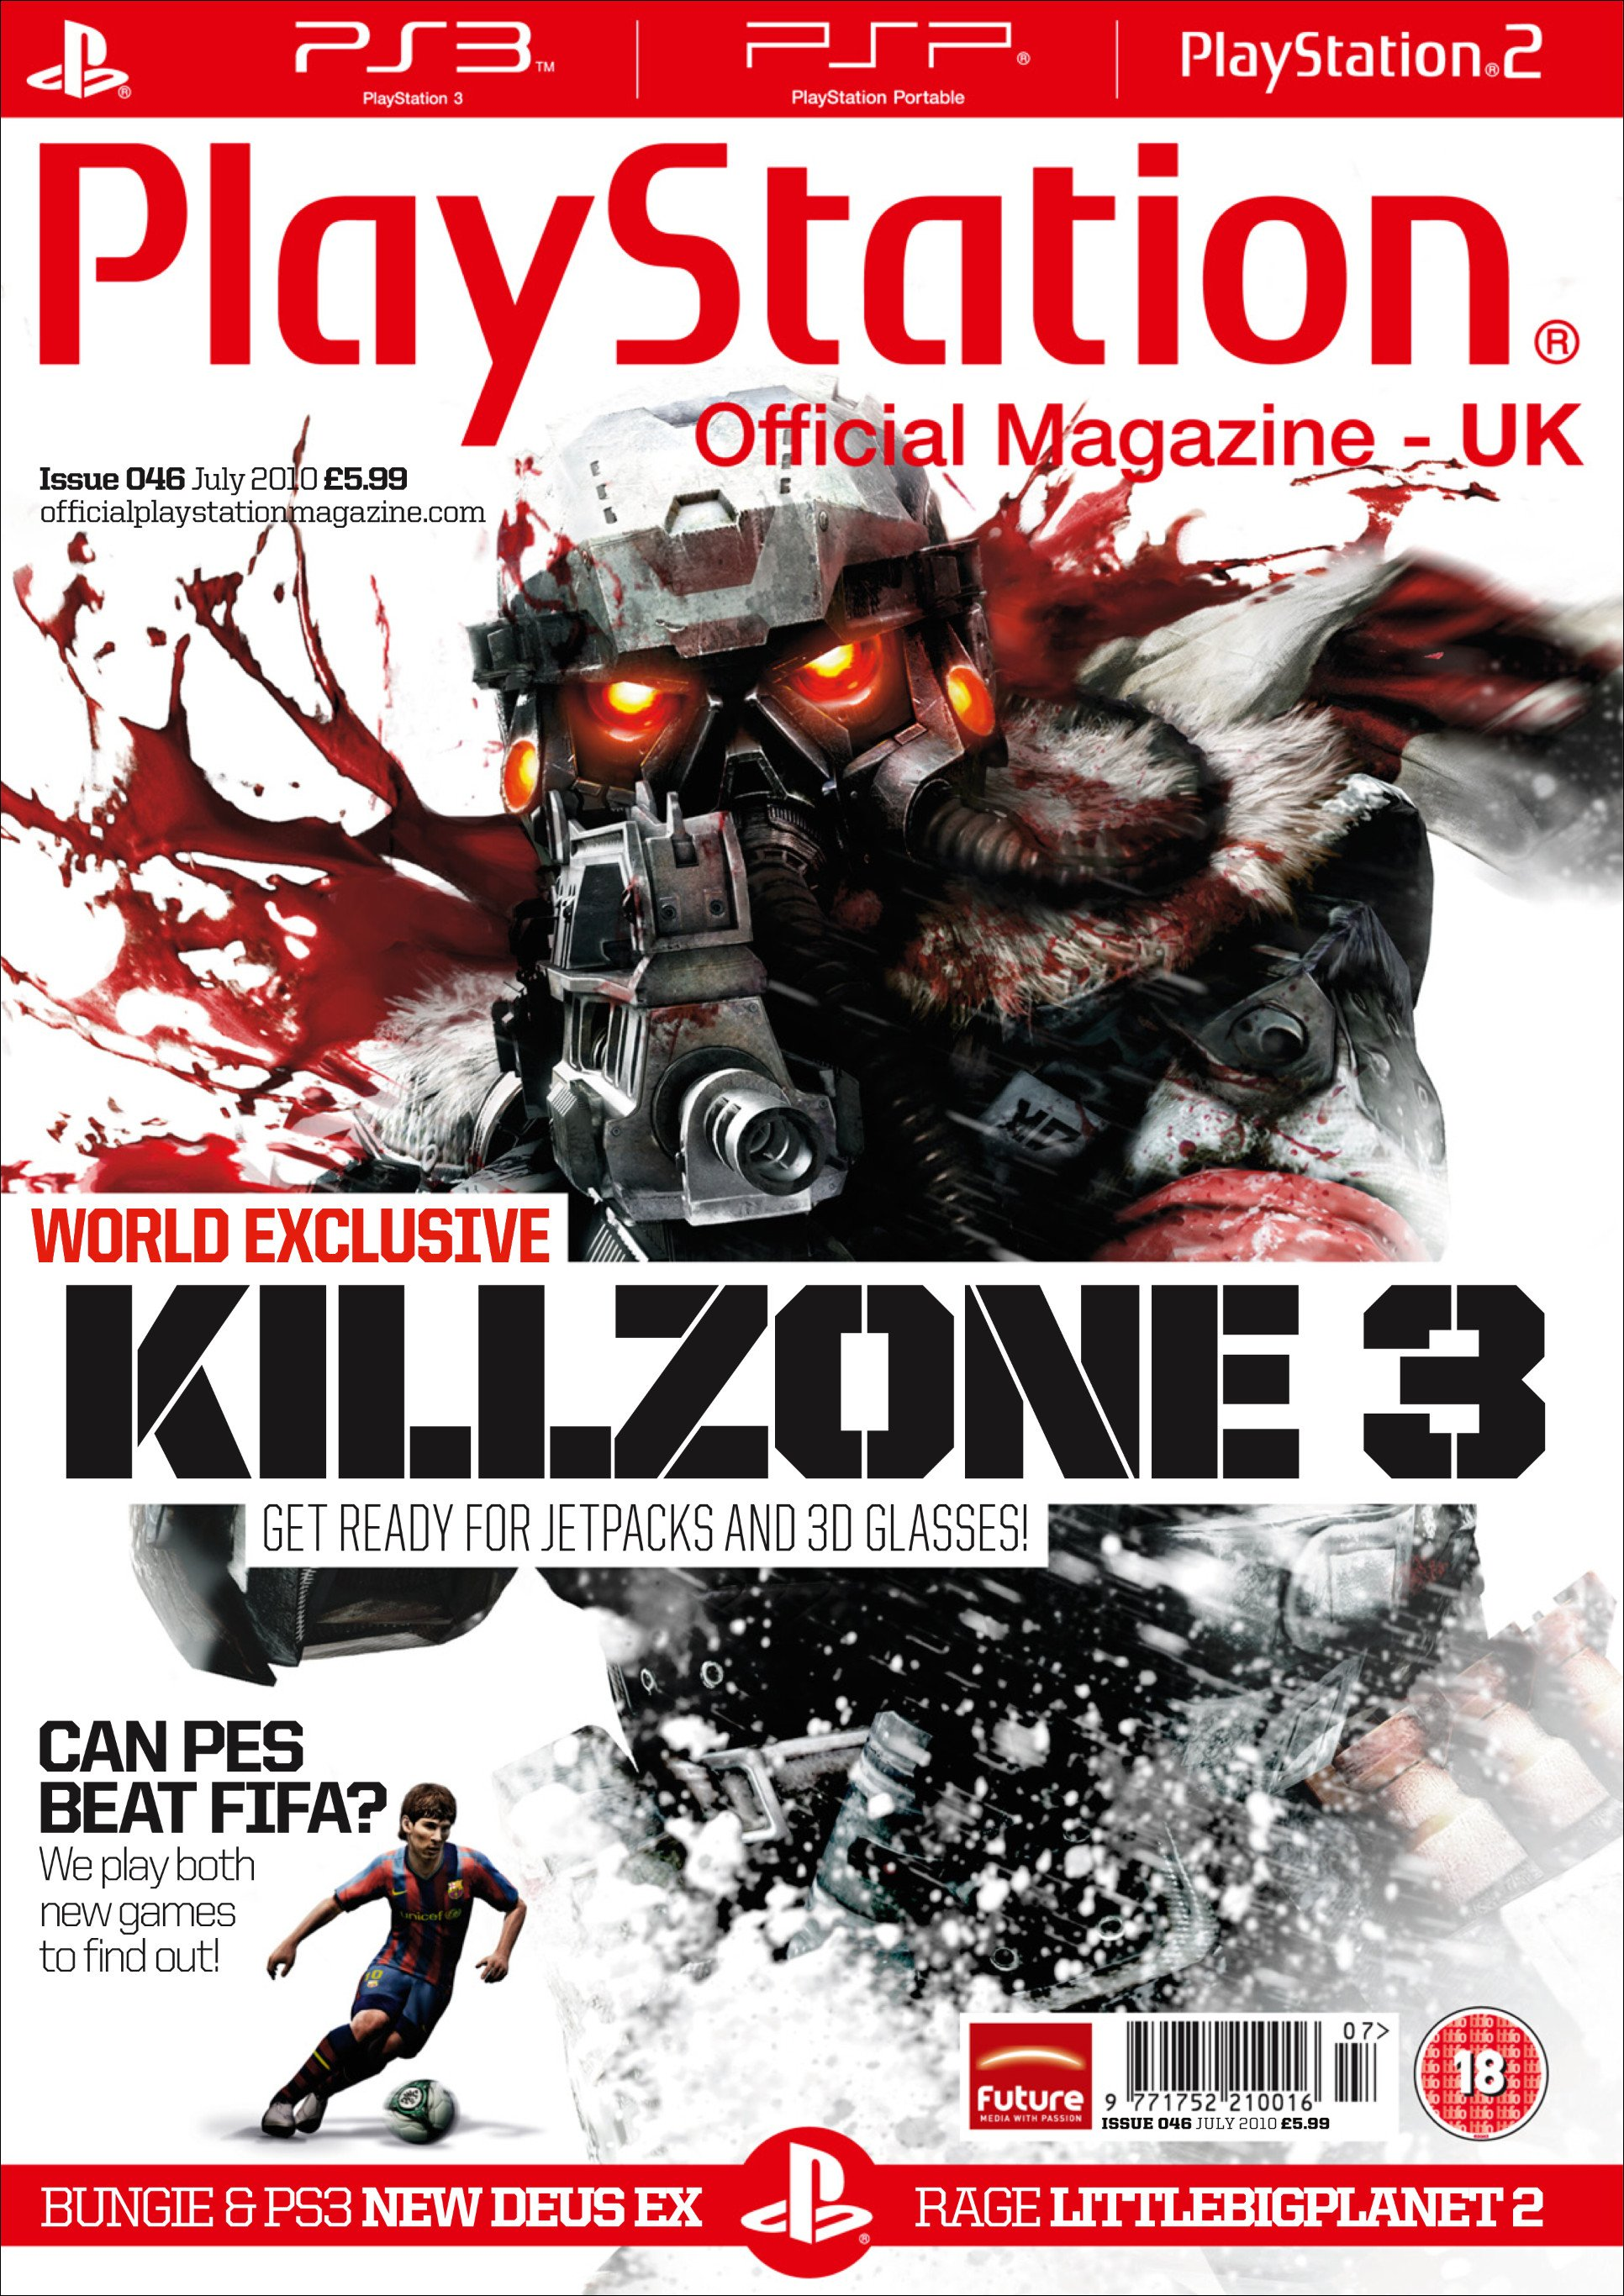 Playstation Official Magazine UK 046 (July 2010)